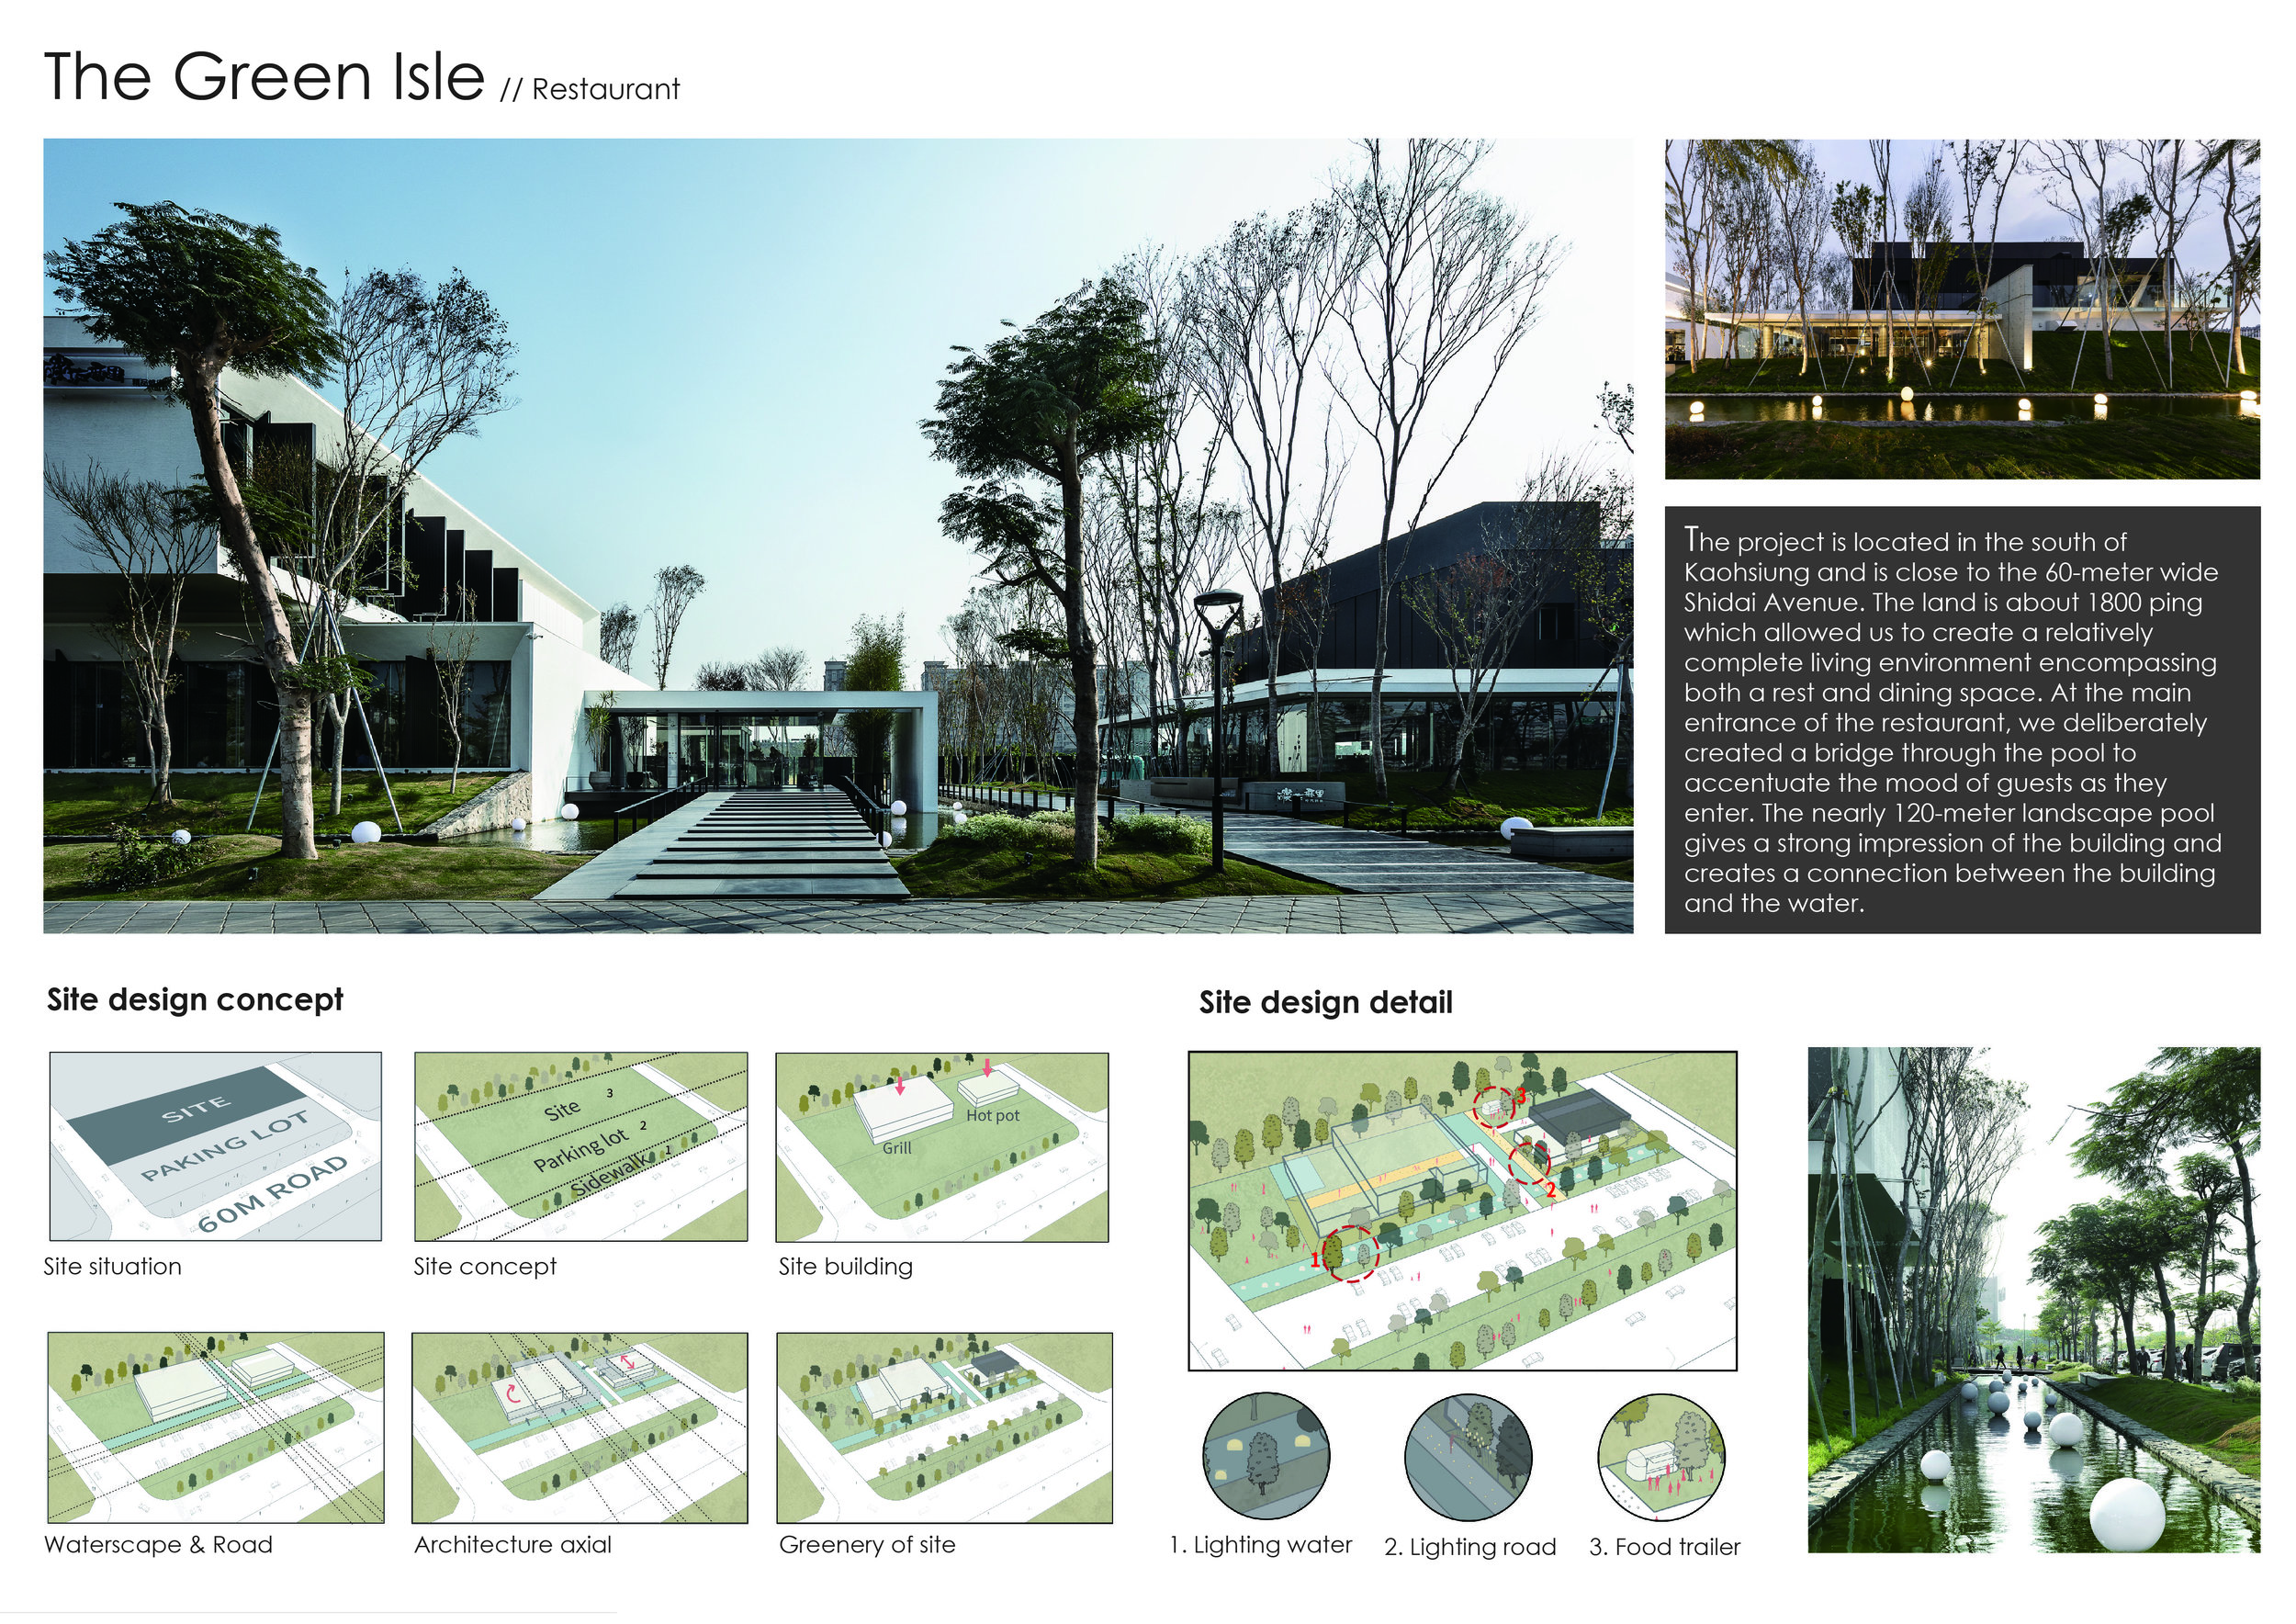 Project Name: The Green Isle - Design by: Chain10 Architecture & Interior Design InstituteArchitecture Division: SustainableWebsite: http://chain10.com/